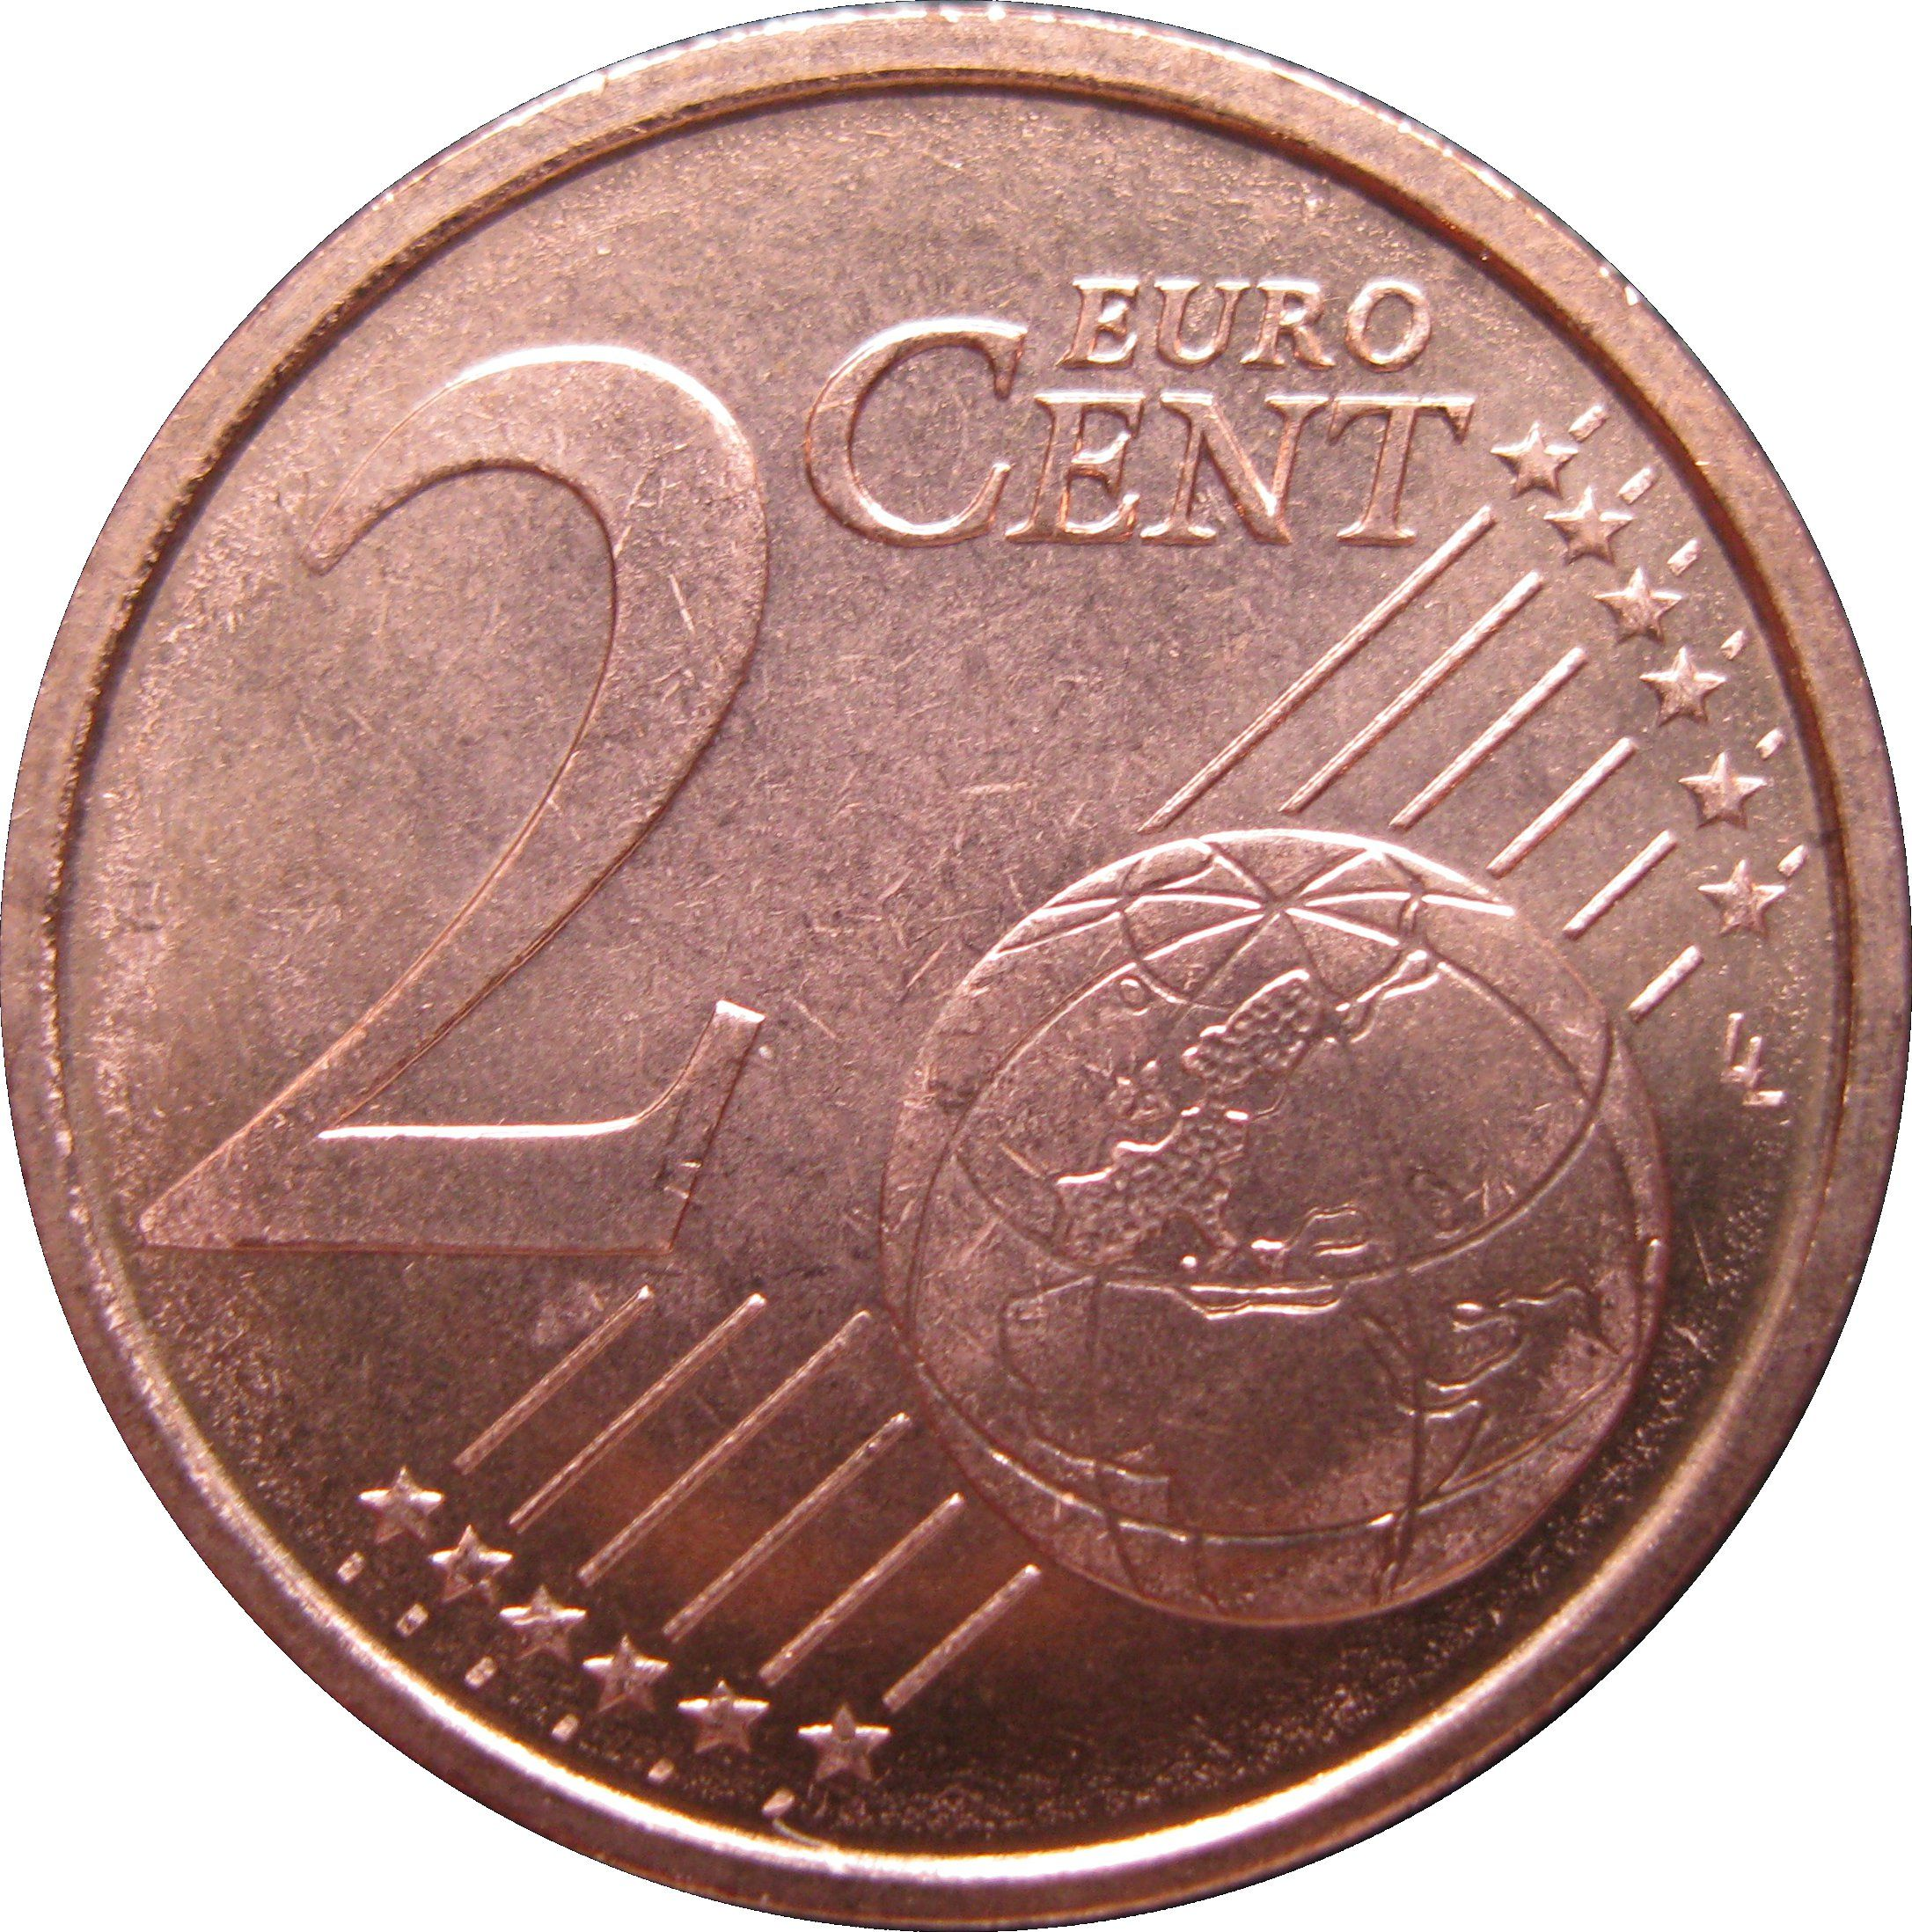 2 cent euro coin worth in america